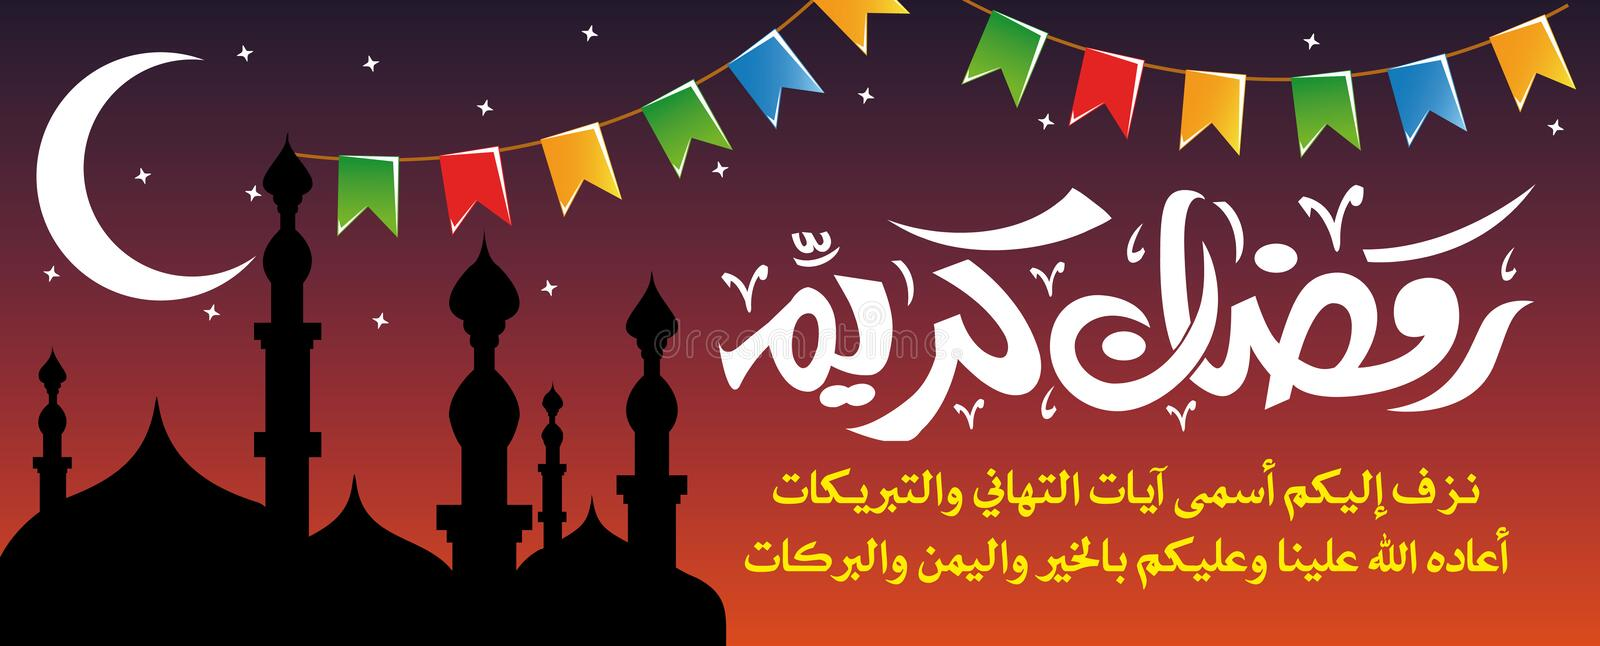 ramadan kareem royaltyfri illustrationer